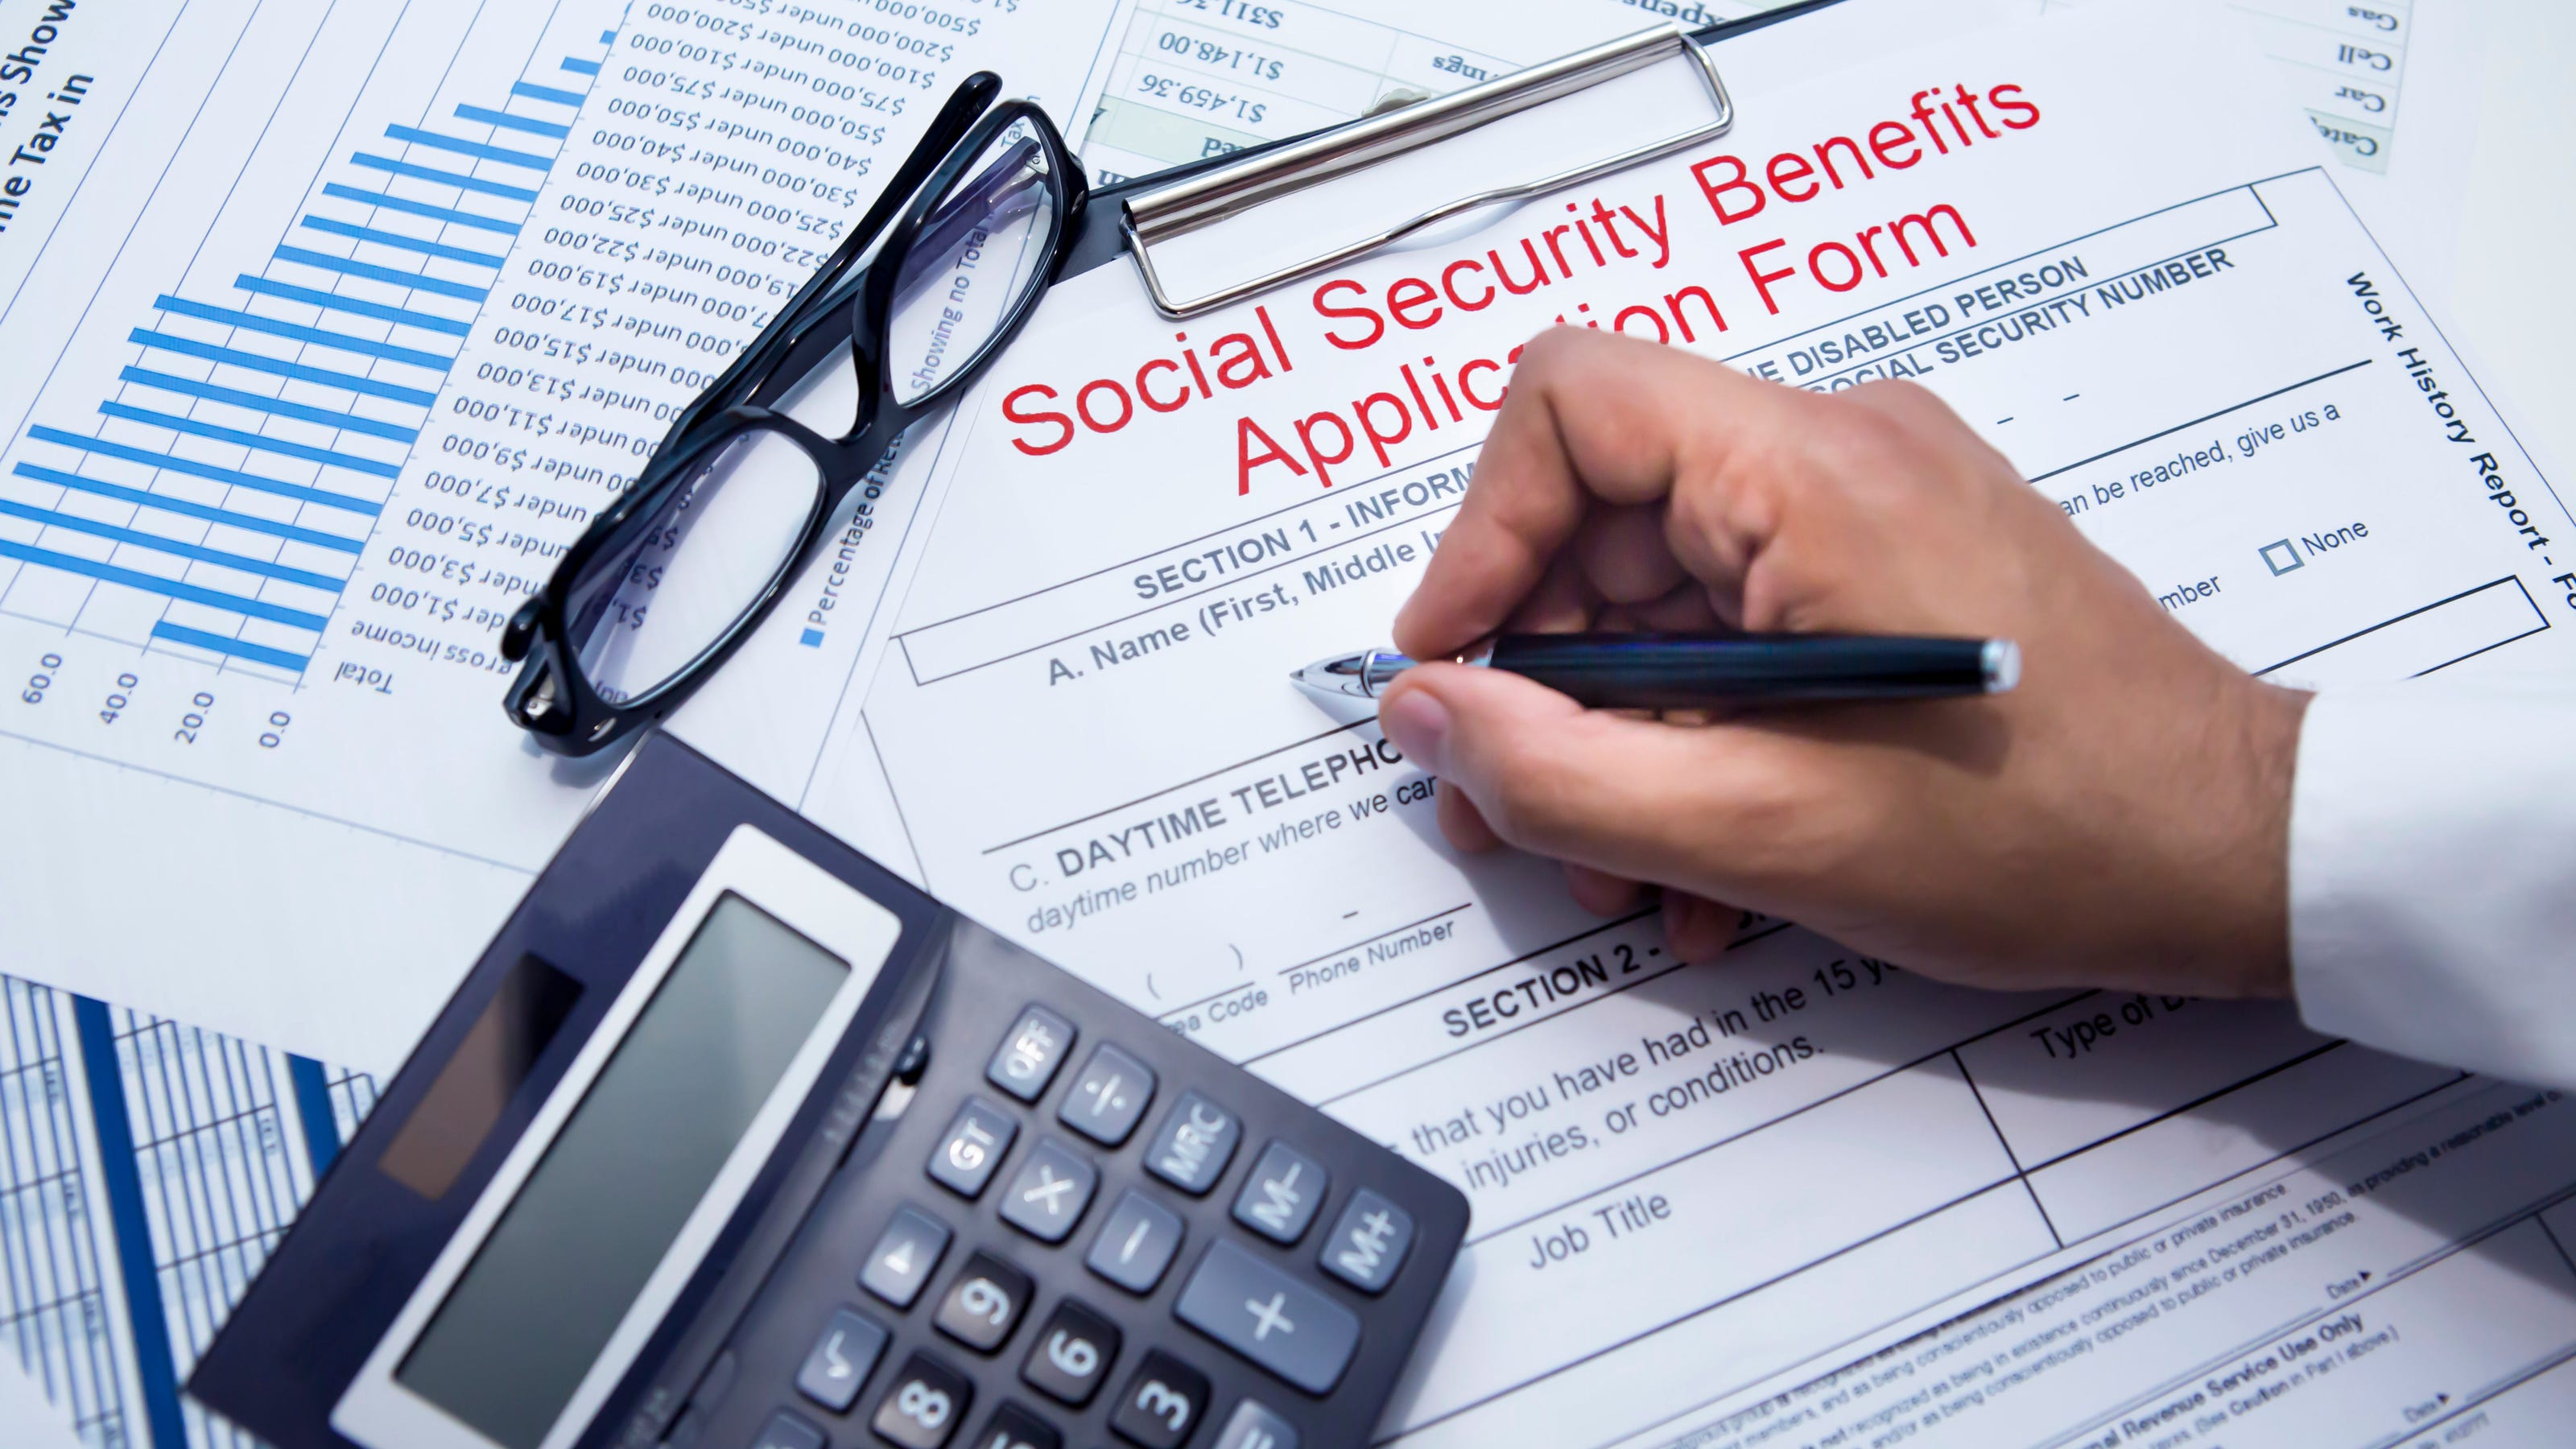 Social Security 2020 4 Changes You Should Expect This Year